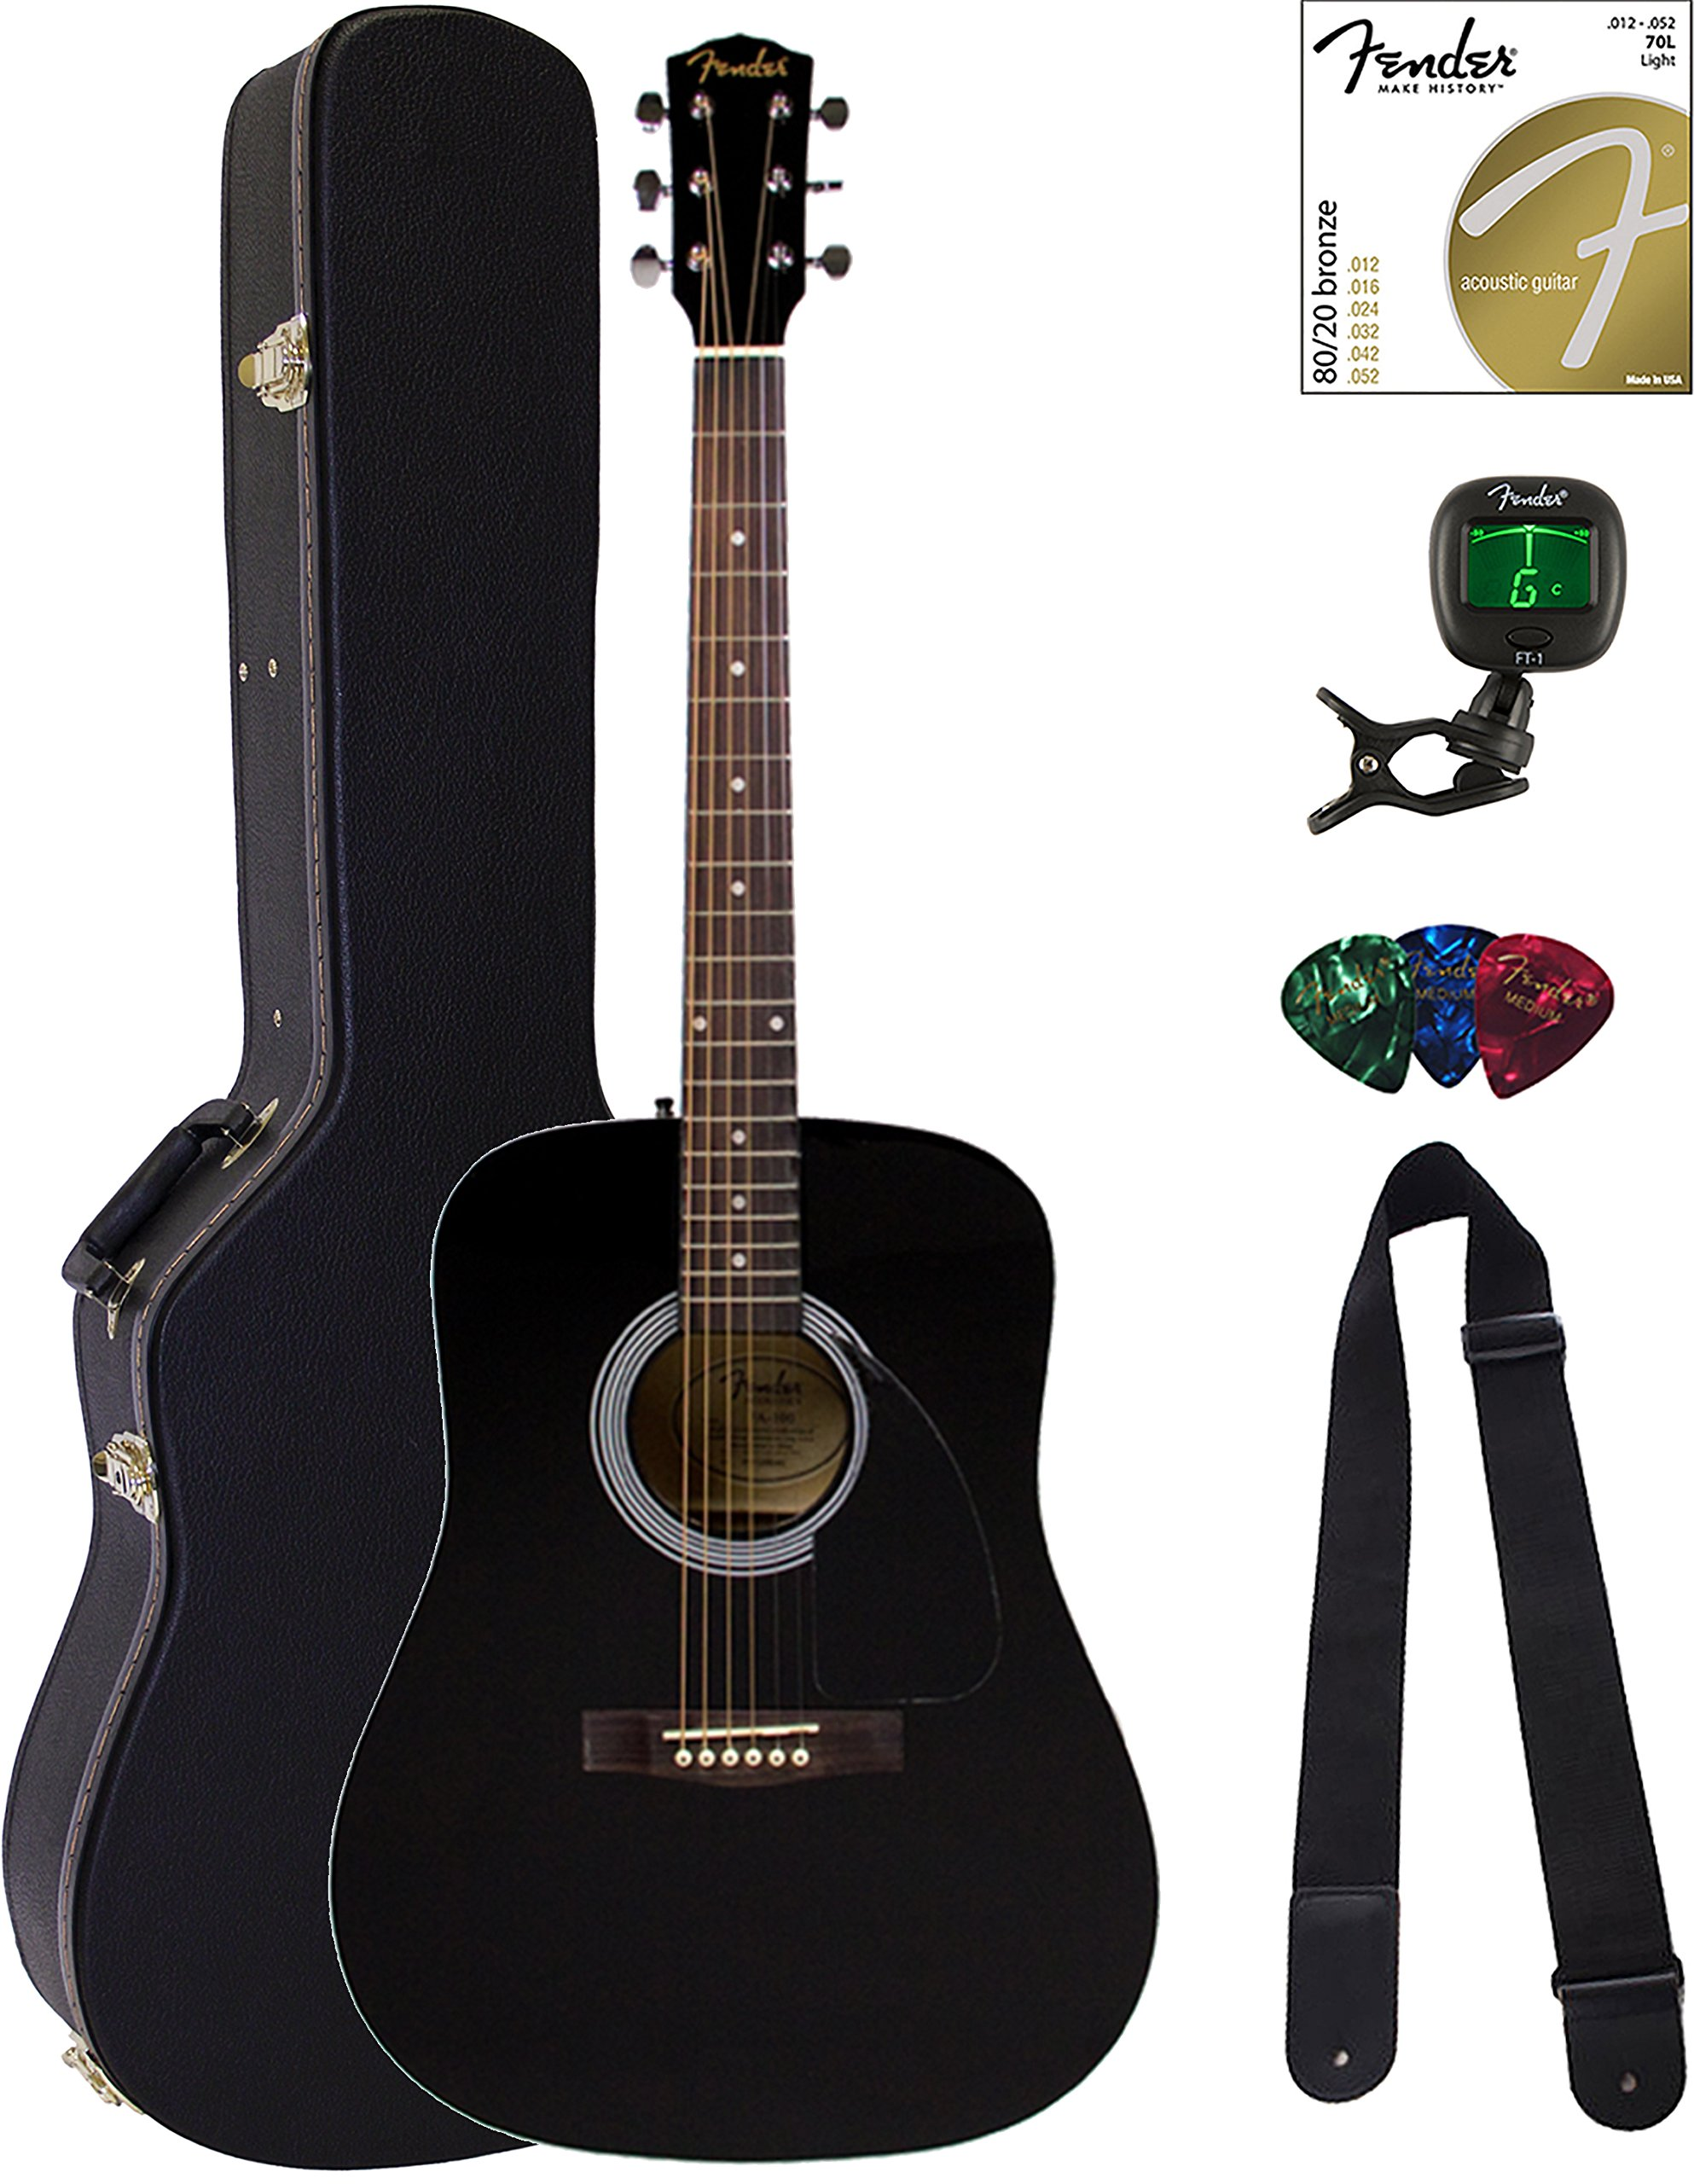 Fender FA-100 Dreadnought Acoustic Guitar - Black Bundle with Hard Case, Tuner, Strings, Strap, and Picks